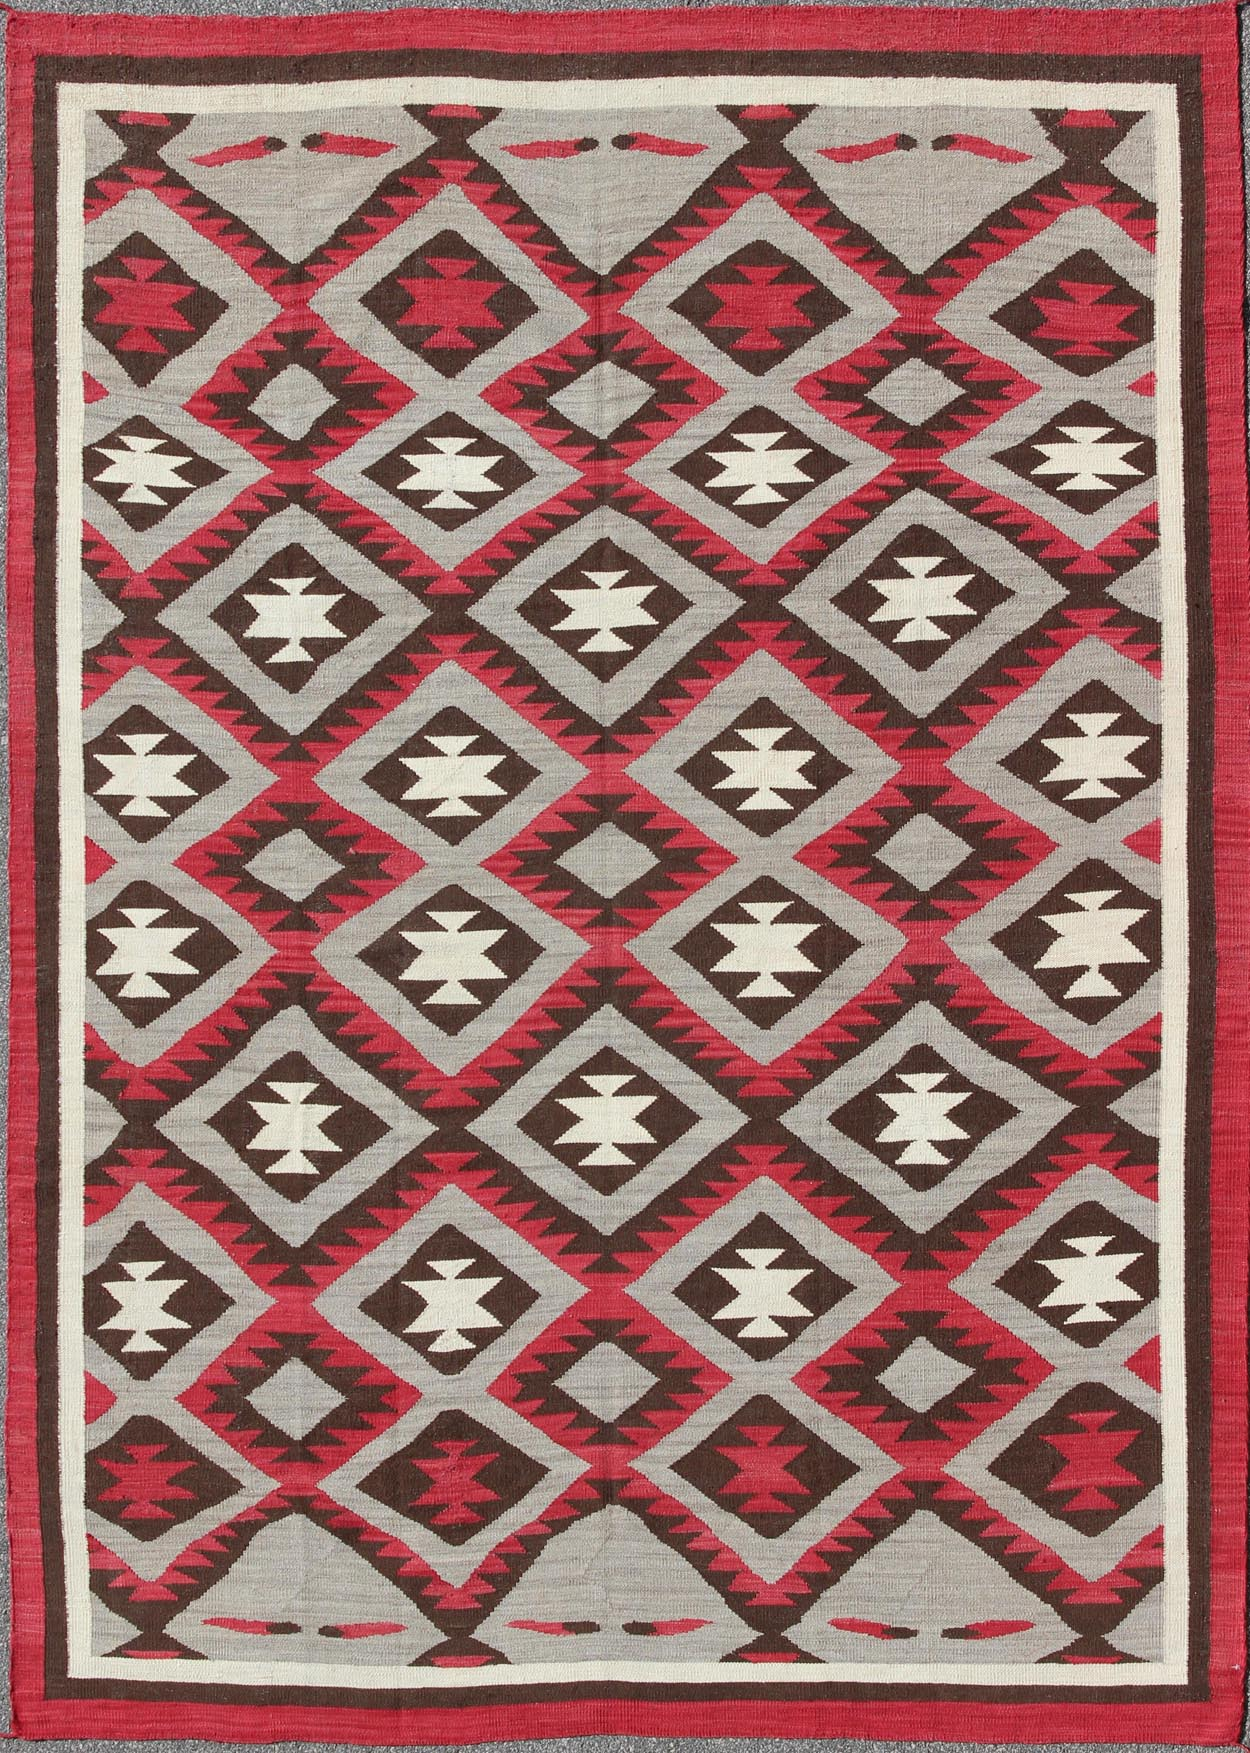 rug in artisan repair weave wy re blog orig jackson picture hand rugs quality hooked